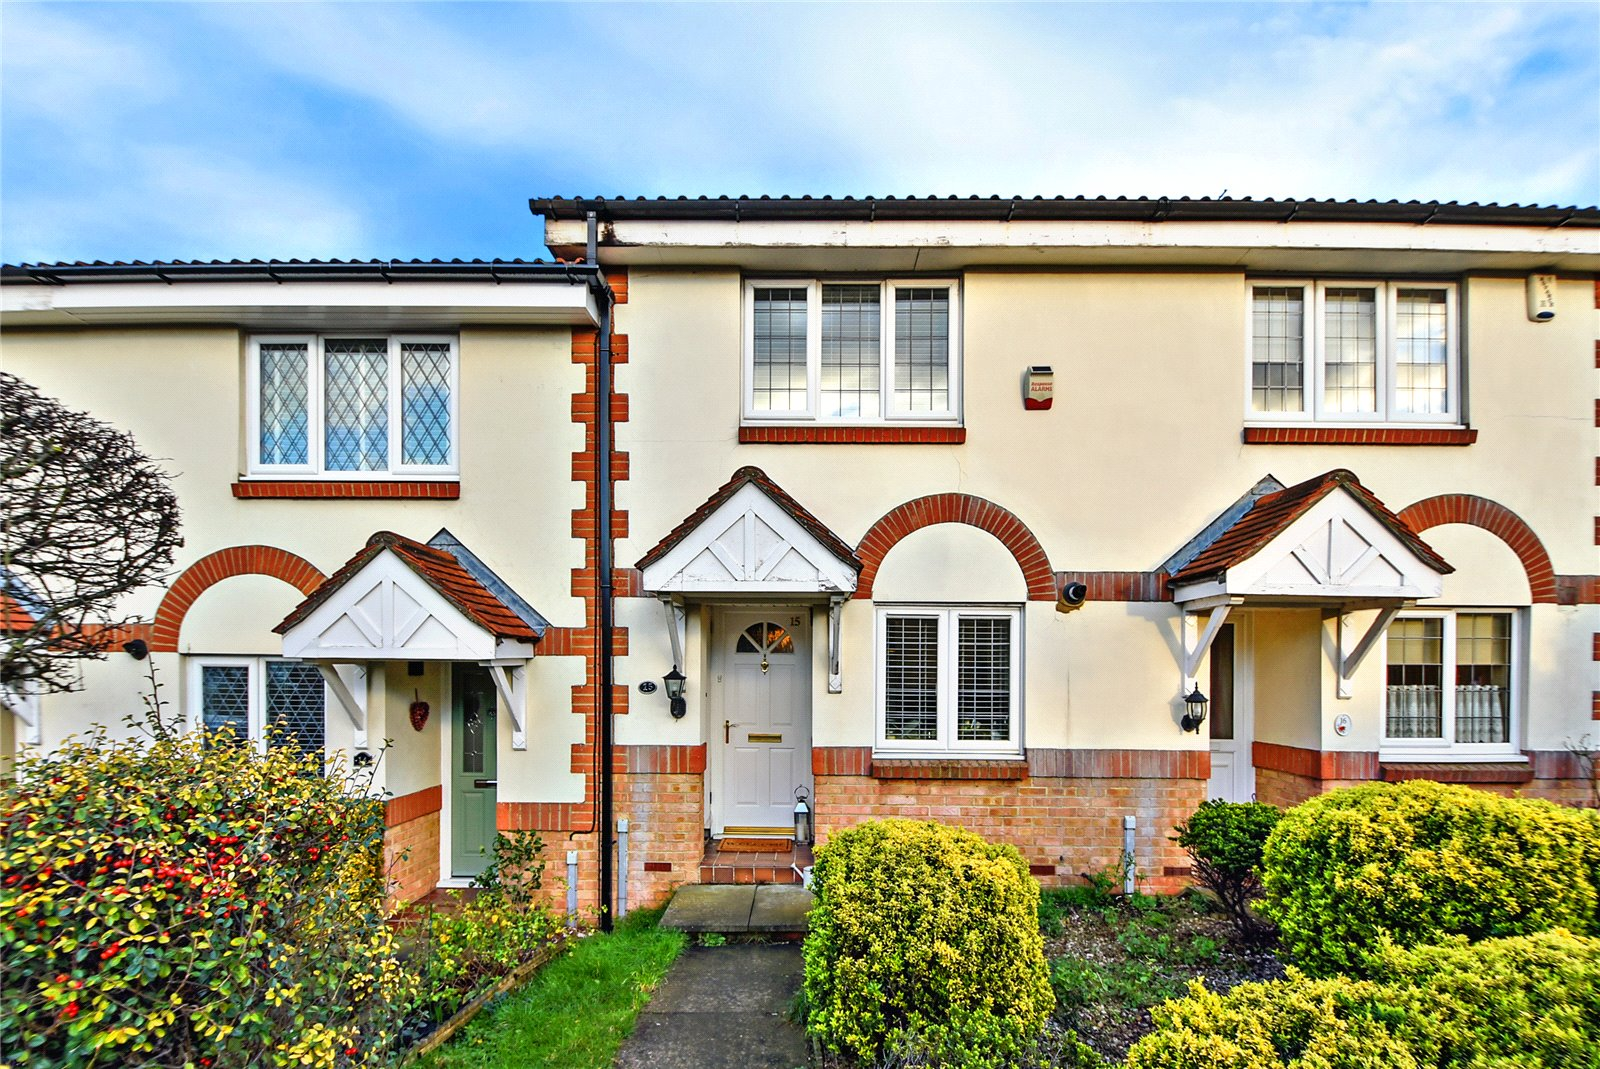 Turner Court, West Dartford, Kent, DA1